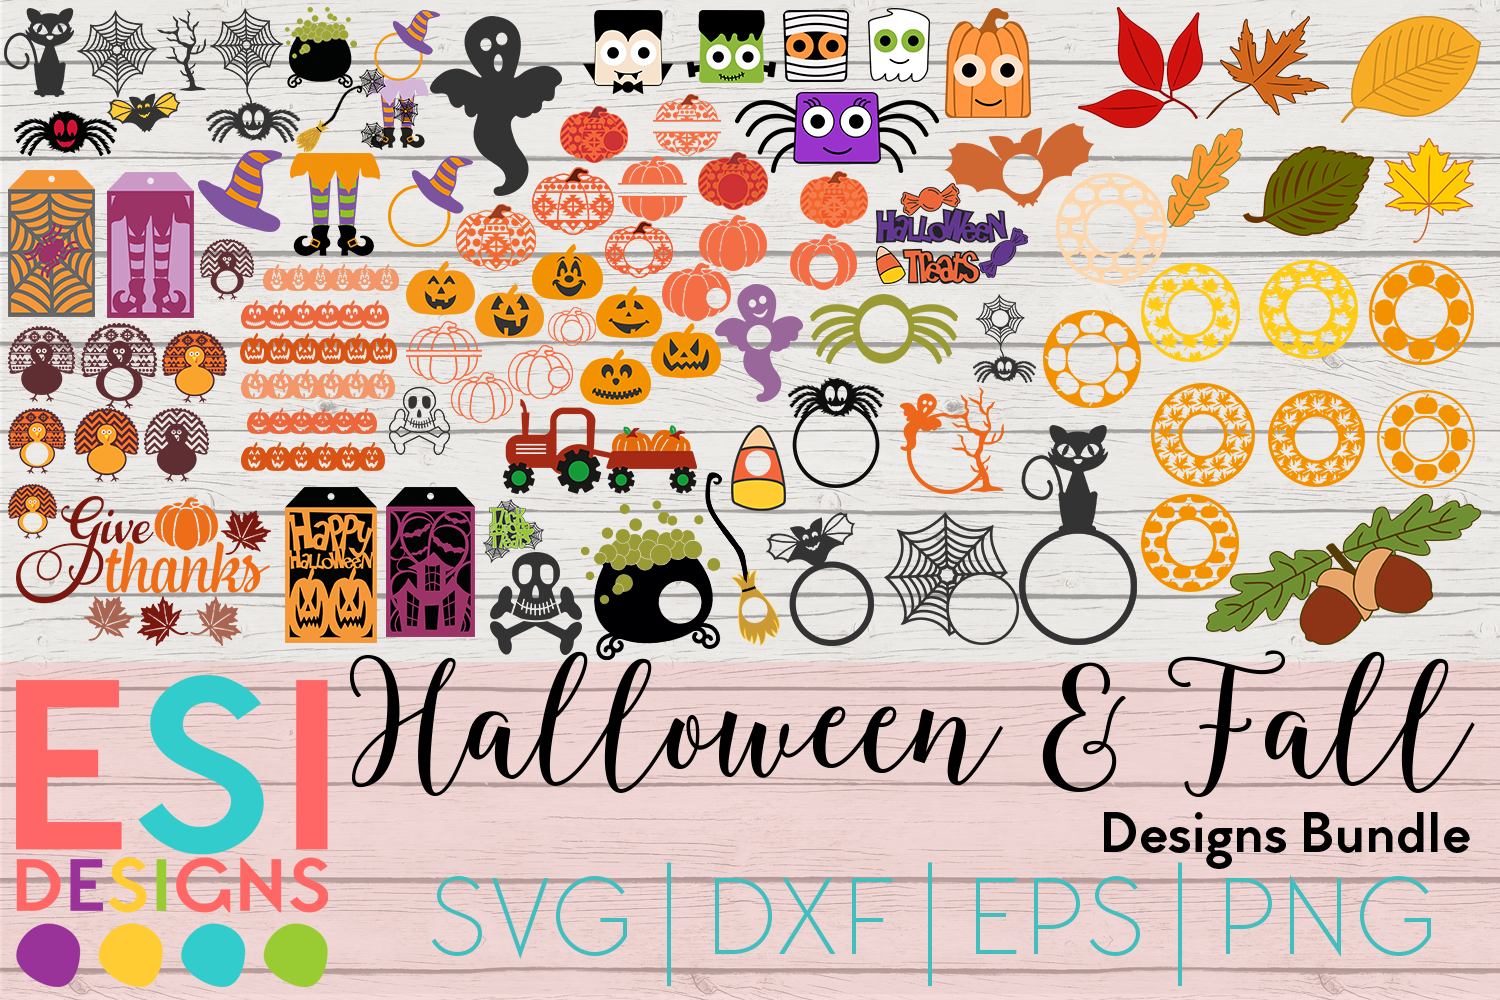 Halloween and Fall Designs Bundle -SVG DXF EPS & PNG example image 1